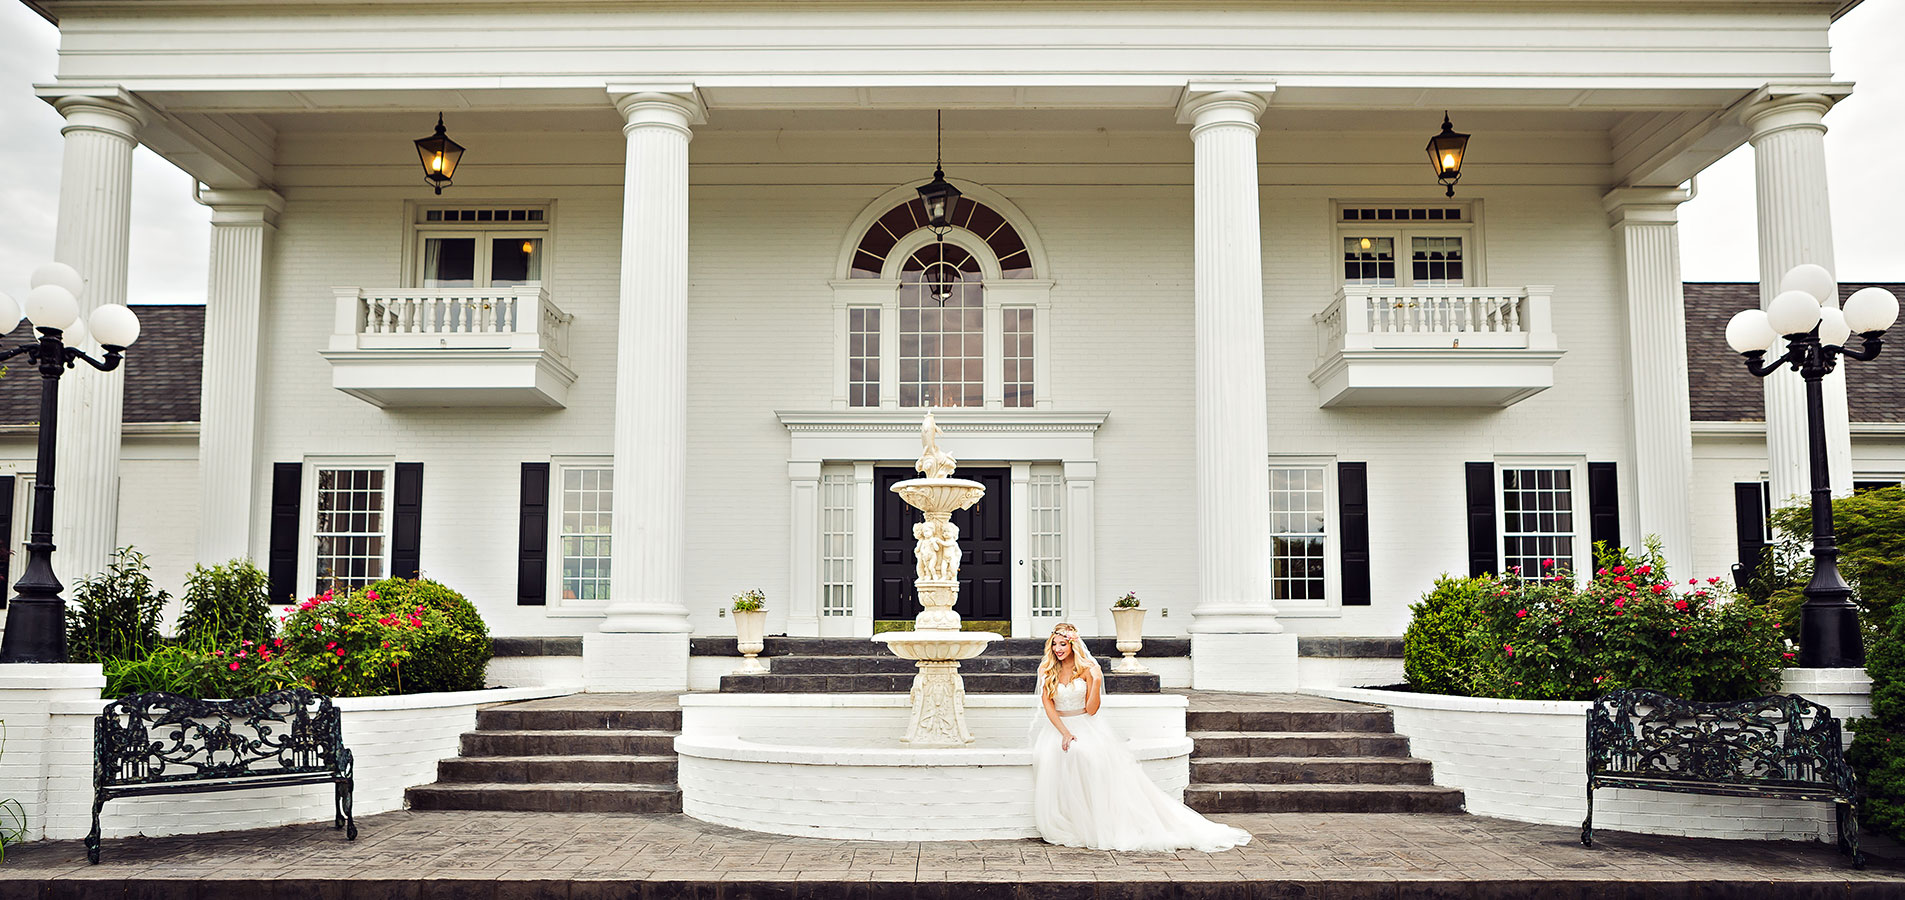 Bell Mill Mansion | Chattanooga Wedding Venue - Slide 01